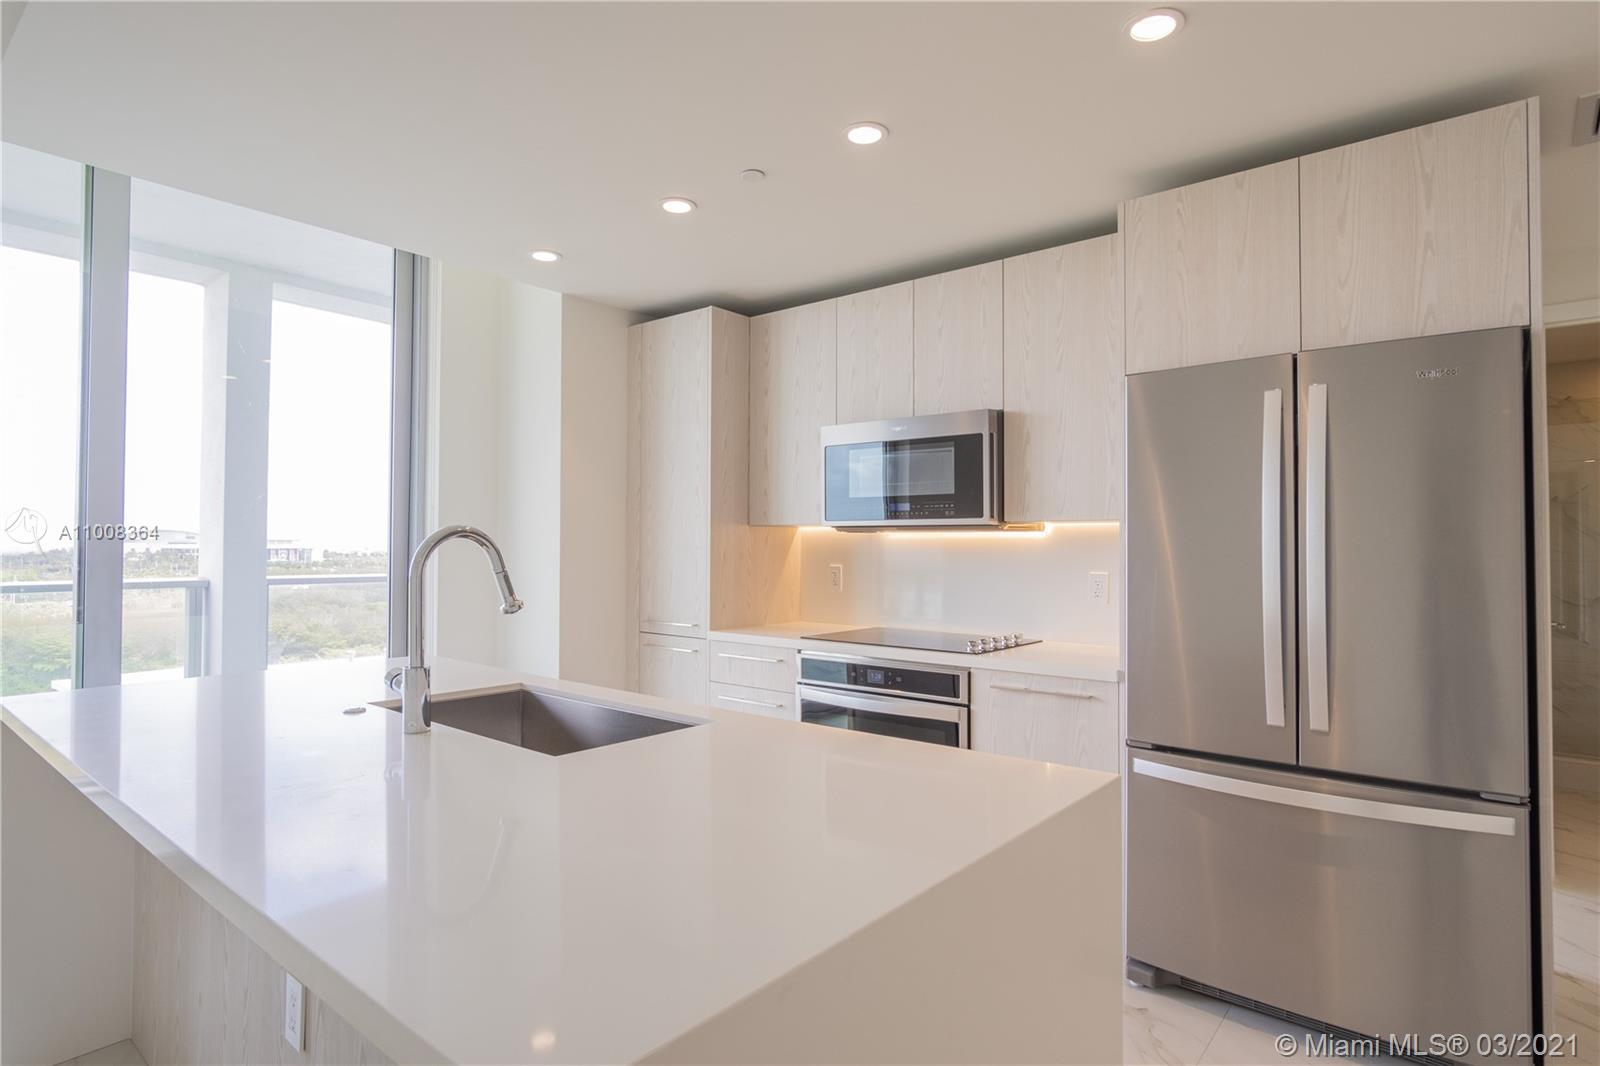 NEW listing for sale! Beautiful kitchen and flooring design in a brand new high-end building. This 3 bed-3 baths unit with Den with best price on the building. Custom built-in closets and blinds. Located in the beautiful complex in Metropica, next to Sawgrass Mills, this 1,696SF condo has high-end features such including brand new flooring throughout, new Appliances, quartz counters in the kitchen, and all 3 bathrooms, recently built closets and blinds in the bedrooms and living spaces. This unit has a huge spacious balcony features views from each room, full impact glass, washer/dryer in unit, pet friendly. Metropica offers high-end amenities, kids room, 24 hr security, valet services. Unit has one parking space and more parking is available in the building.